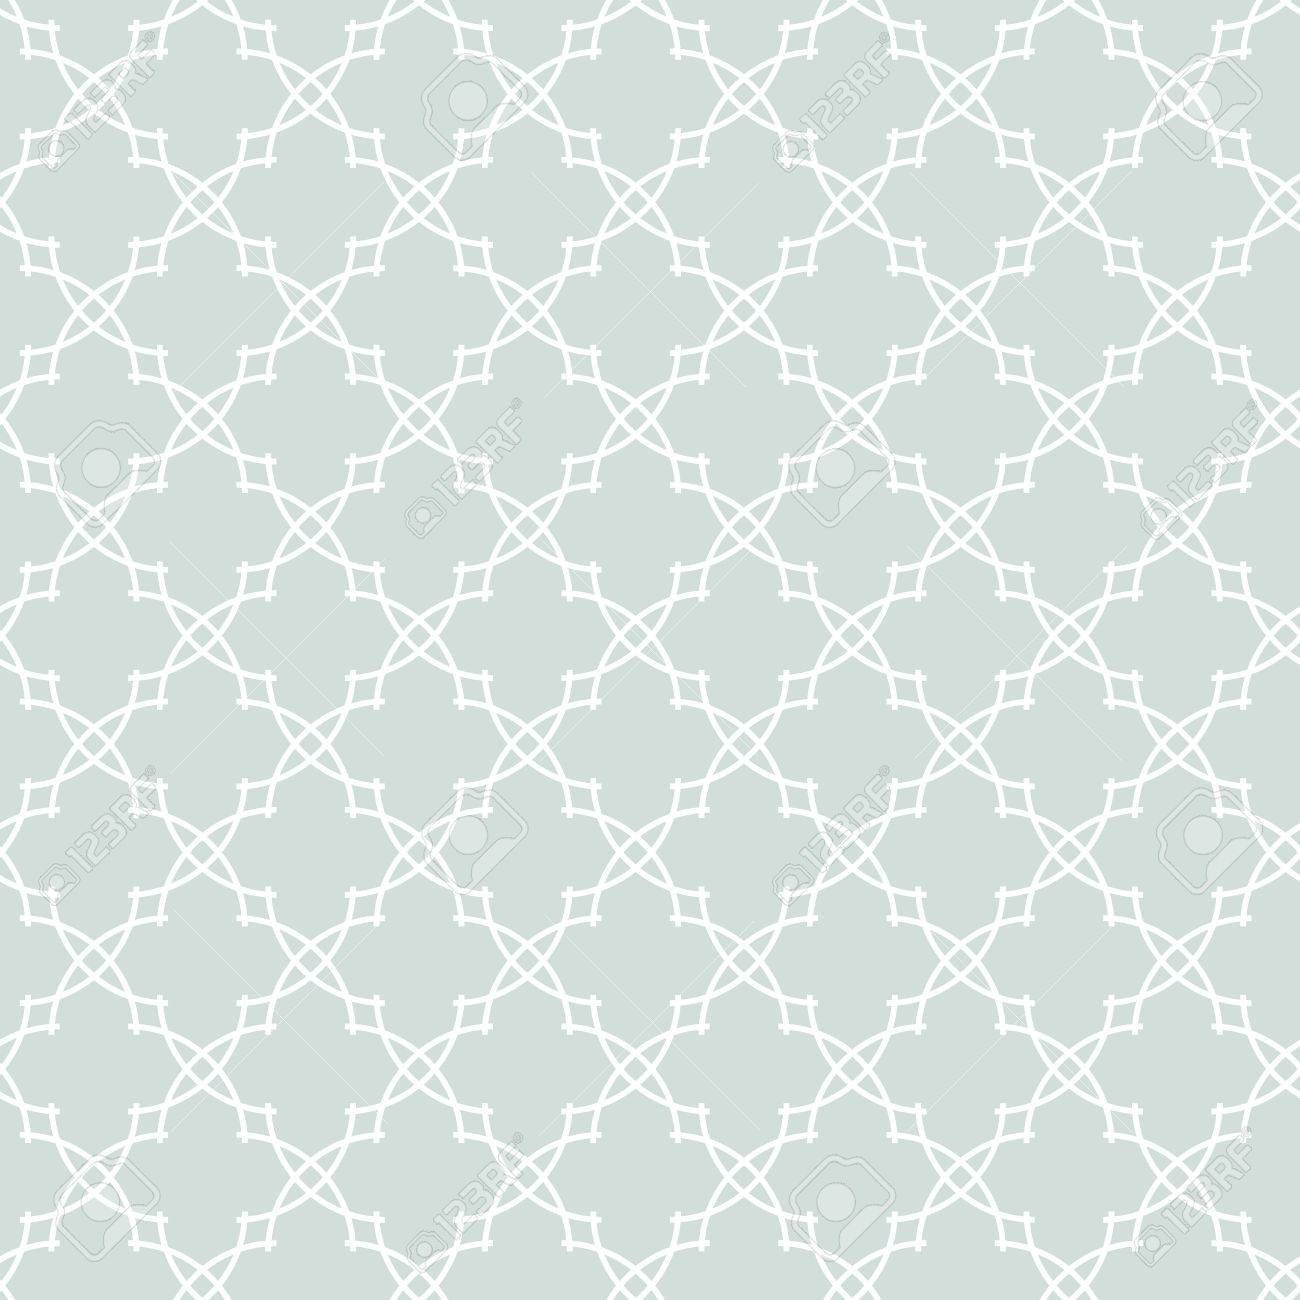 Seamless Vector Ornament In Arabian Style Light Blue And White Pattern For Wallpapers Backgrounds